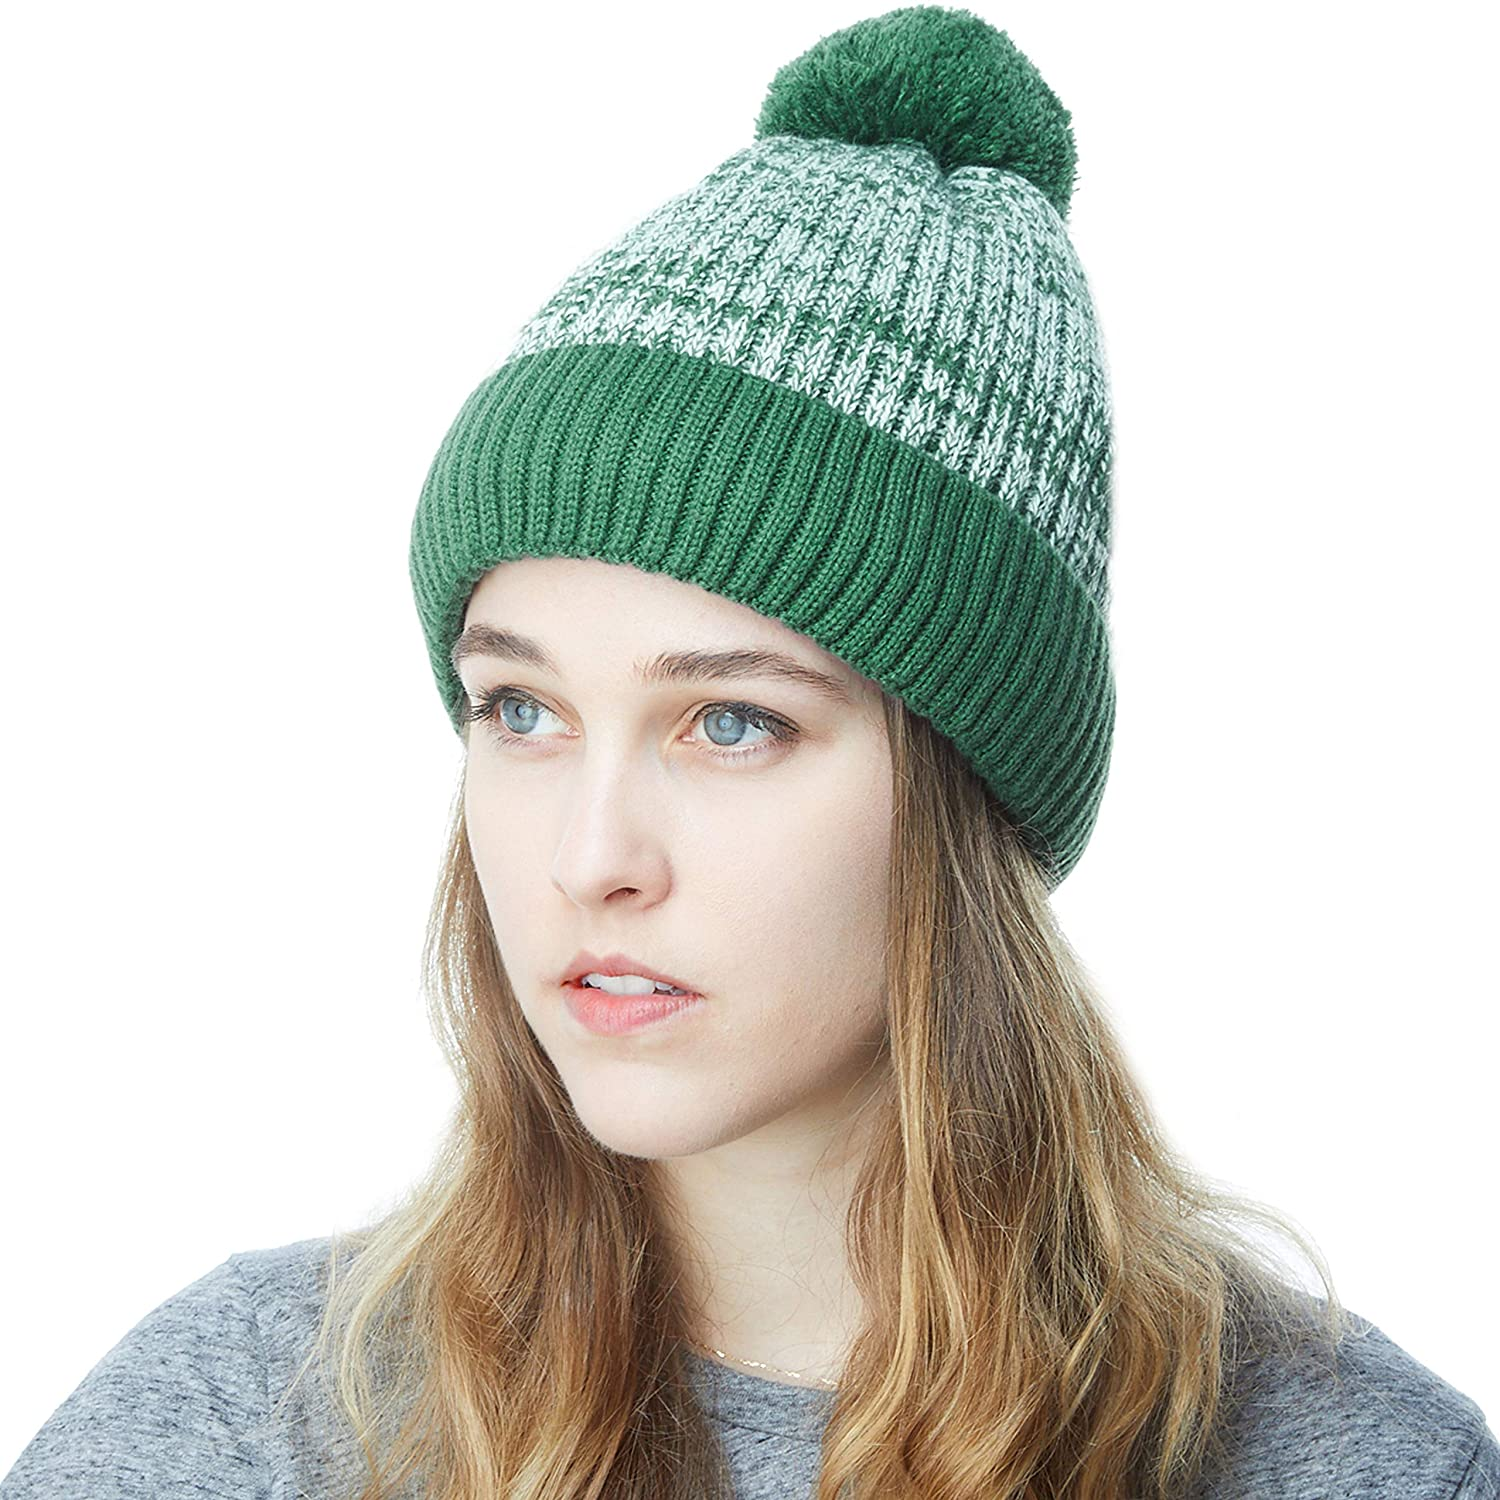 Dark Green With Pom THE HAT DEPOT Exclusive Ribbed Knit Beanie Warm Fuzzy Thick Fleece Lined Hat Winter Skull Cap Extra Warmth